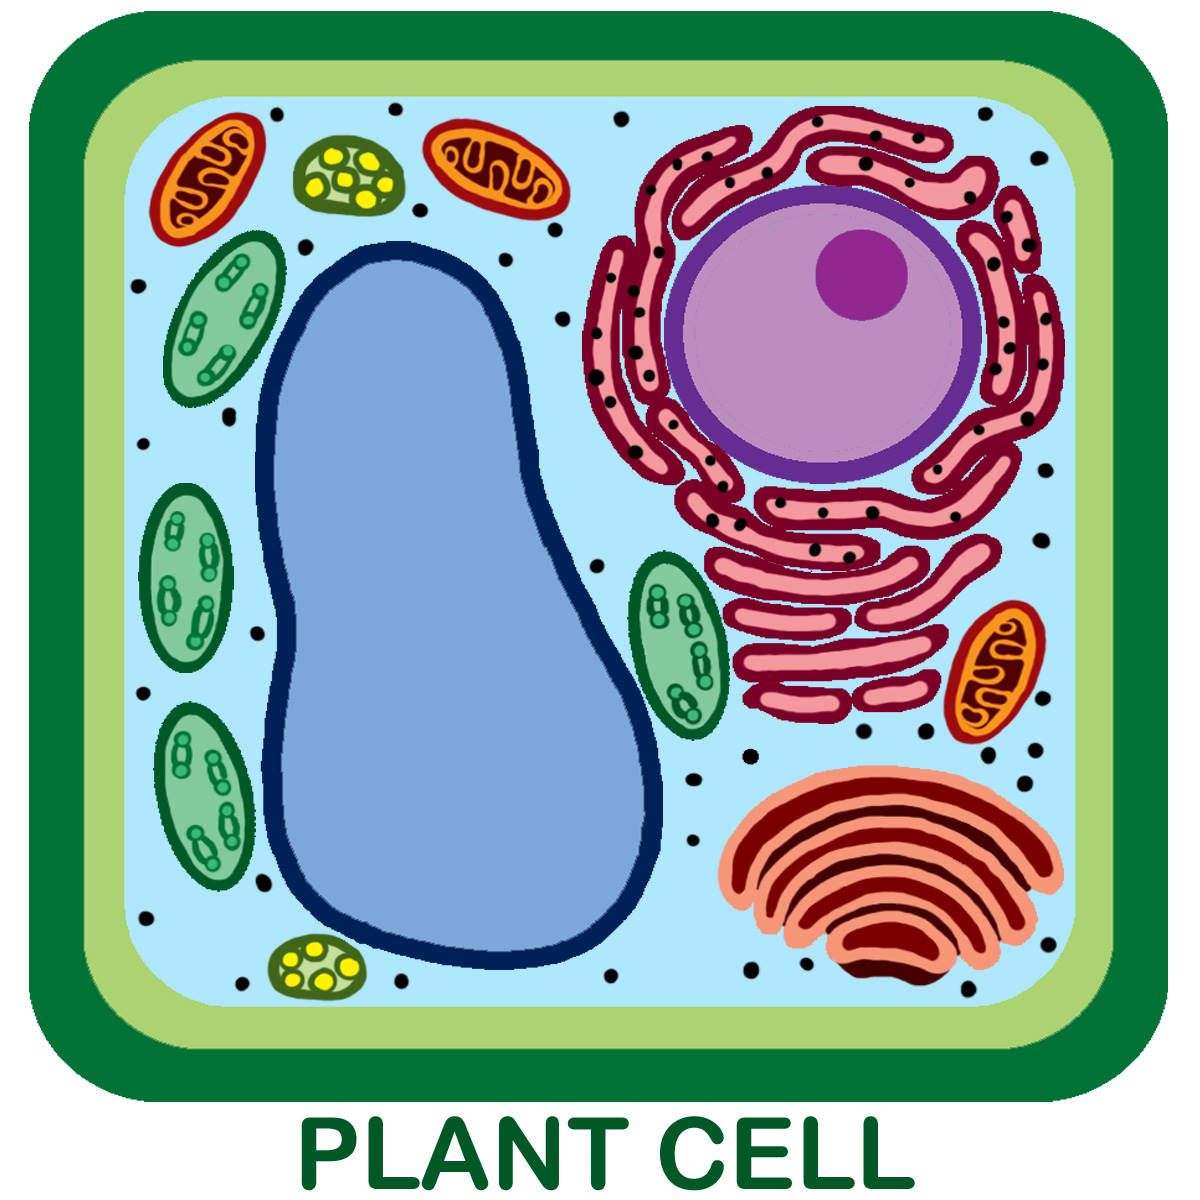 Central Vacule Golgi Nucleus Chloroplast Lysosome Ro Plant Cell Diagram Showing A